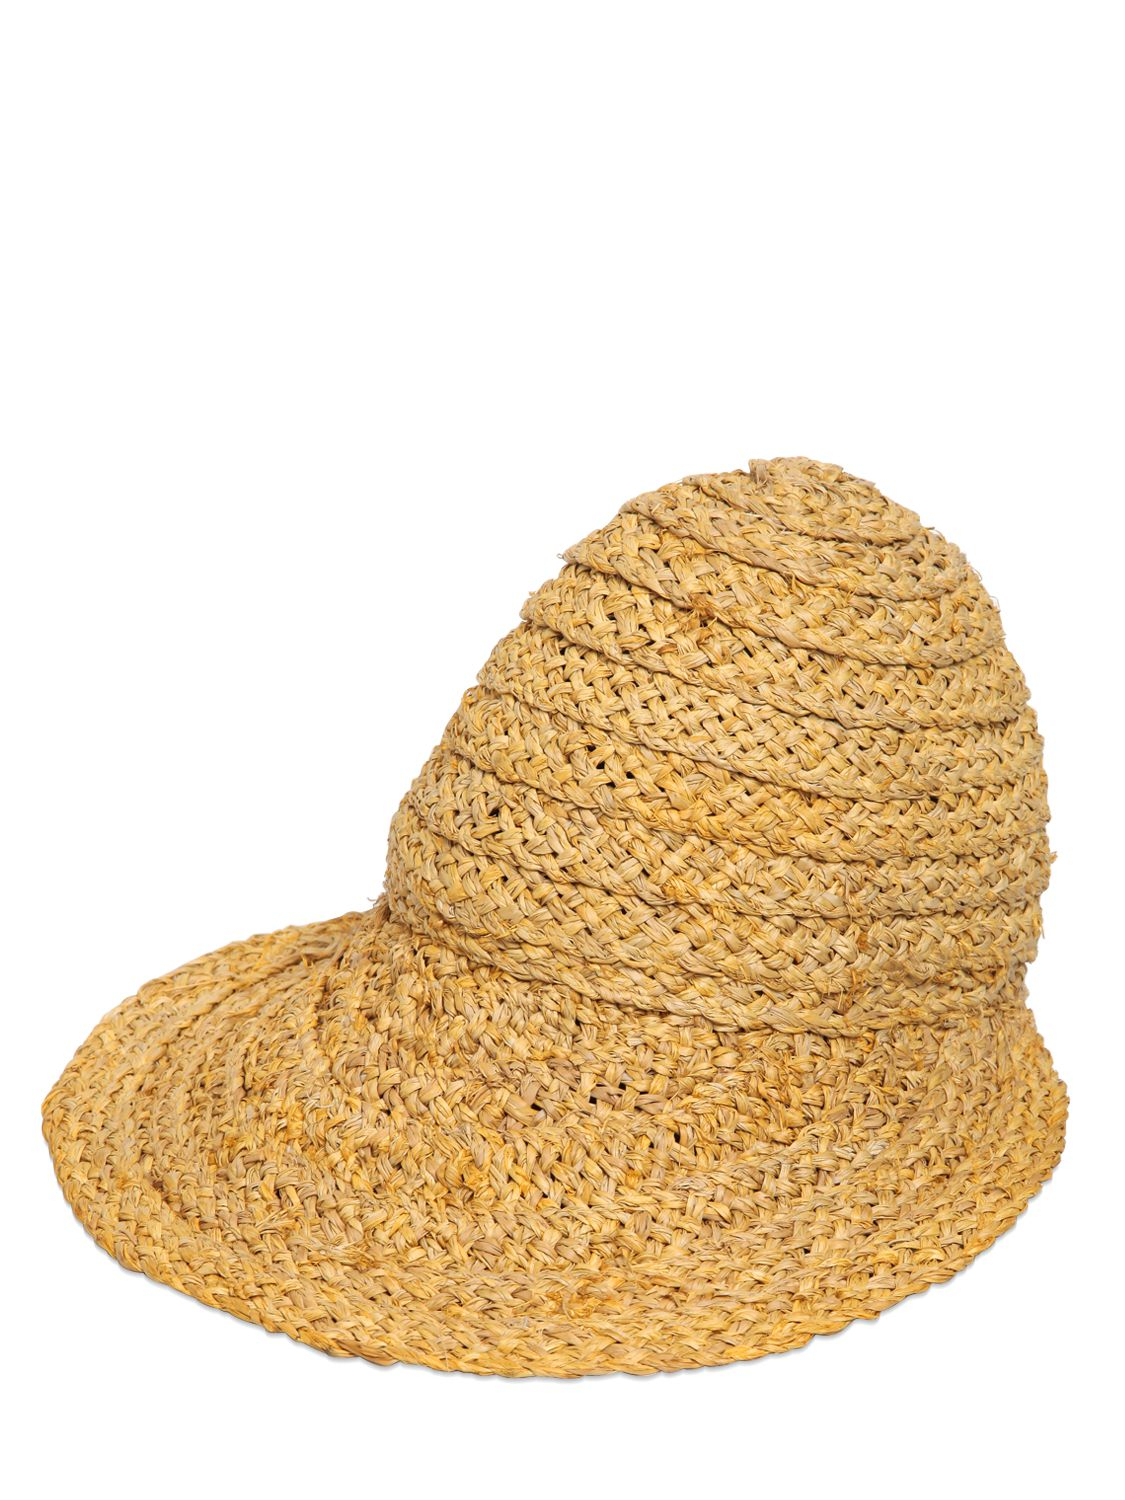 Lyst - Emilio Pucci Hand-Woven Straw Hat With Visor in Natural 0a6947e98ee4